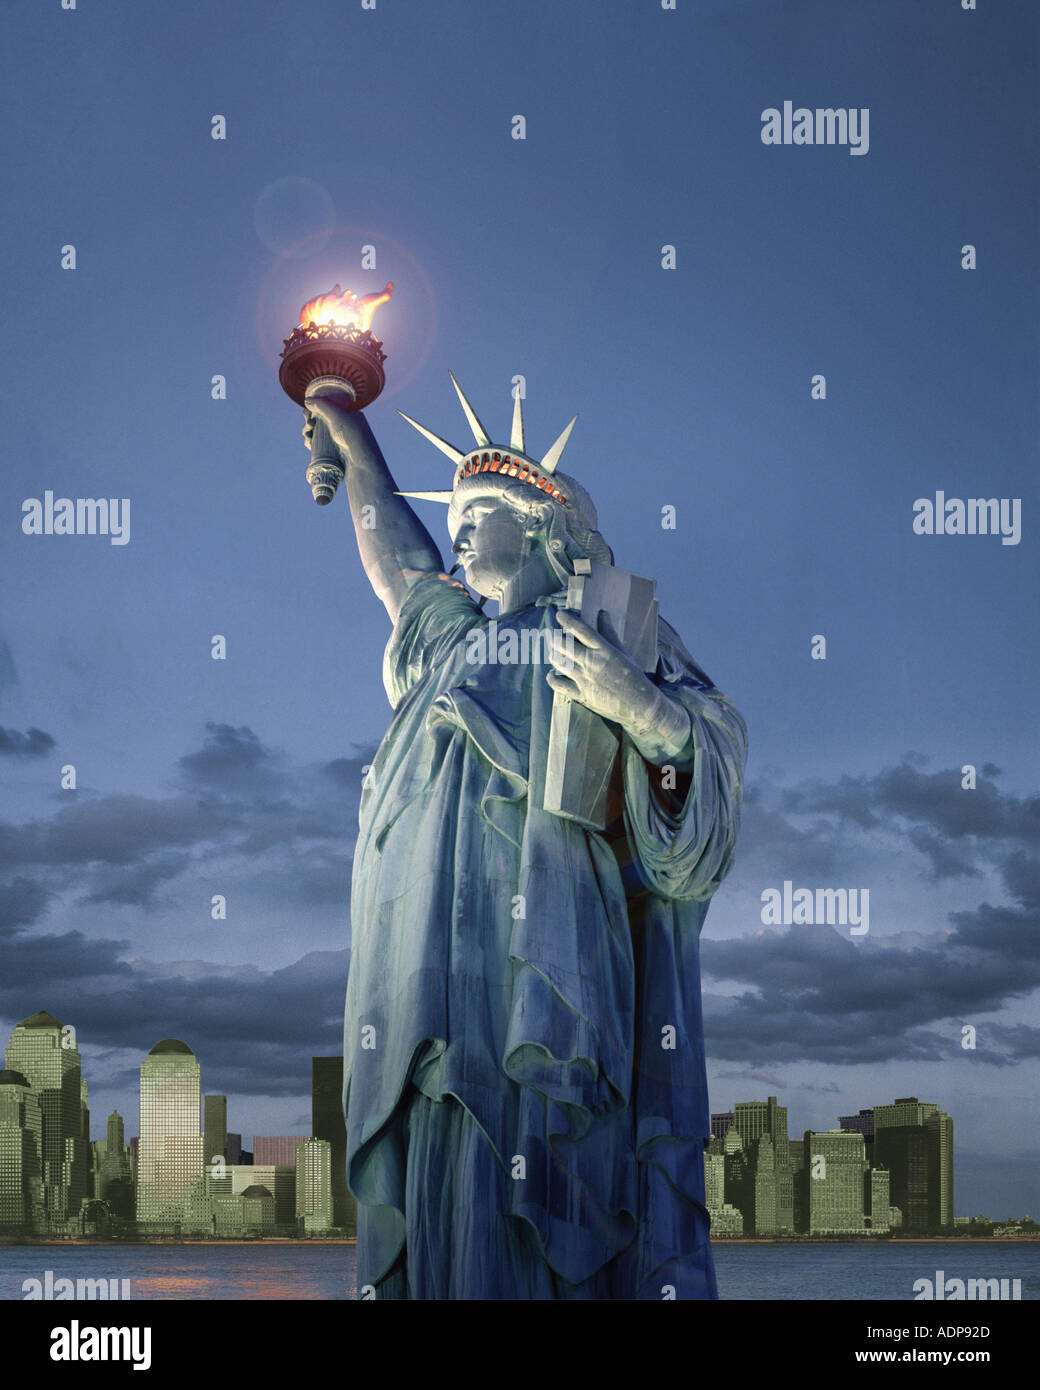 USA - NEW YORK: Statue of Liberty - Stock Image